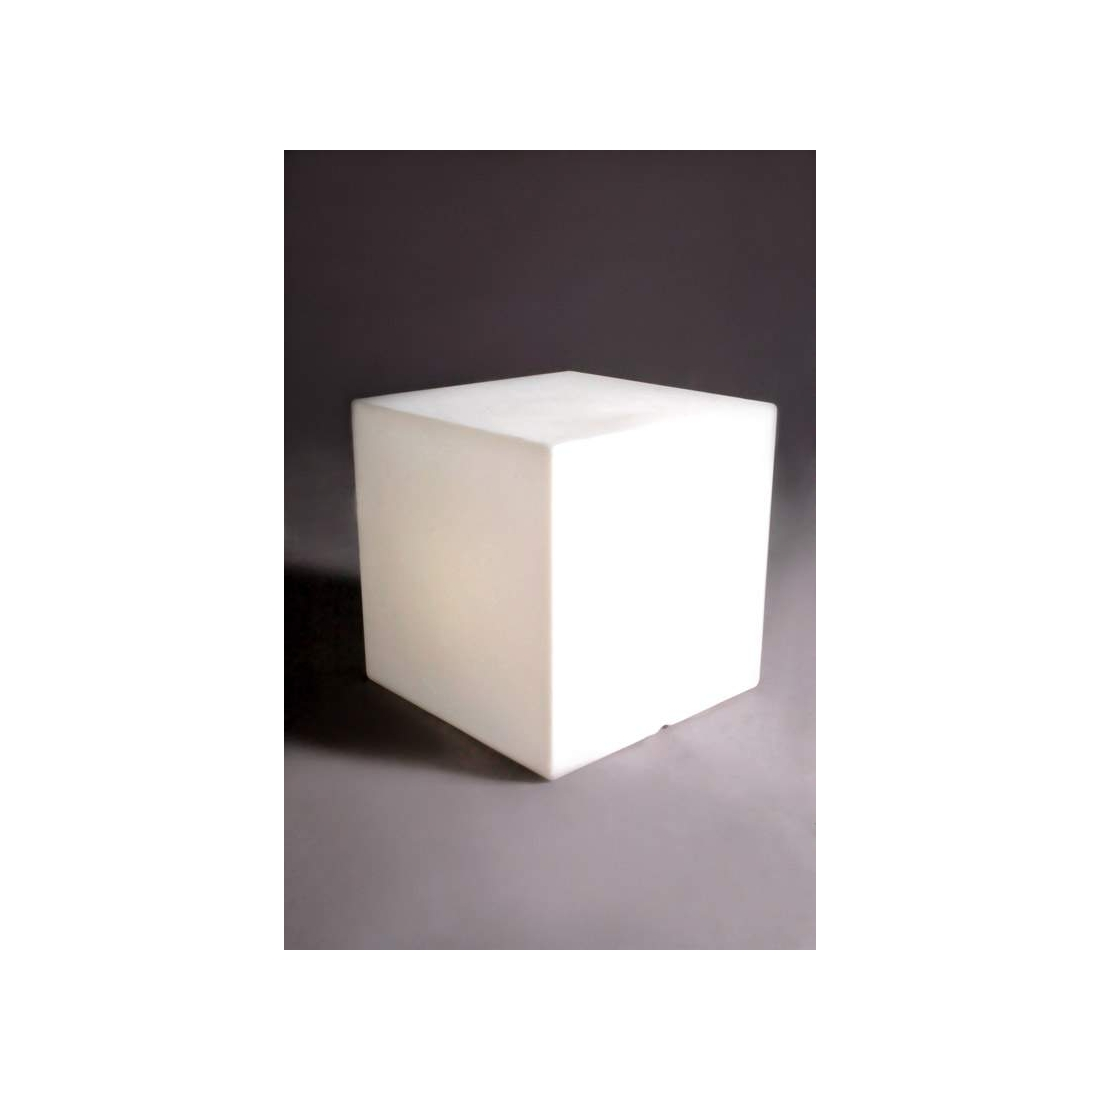 lampe sur pied slide cubo 75 cm lampes sur pieds design slide. Black Bedroom Furniture Sets. Home Design Ideas